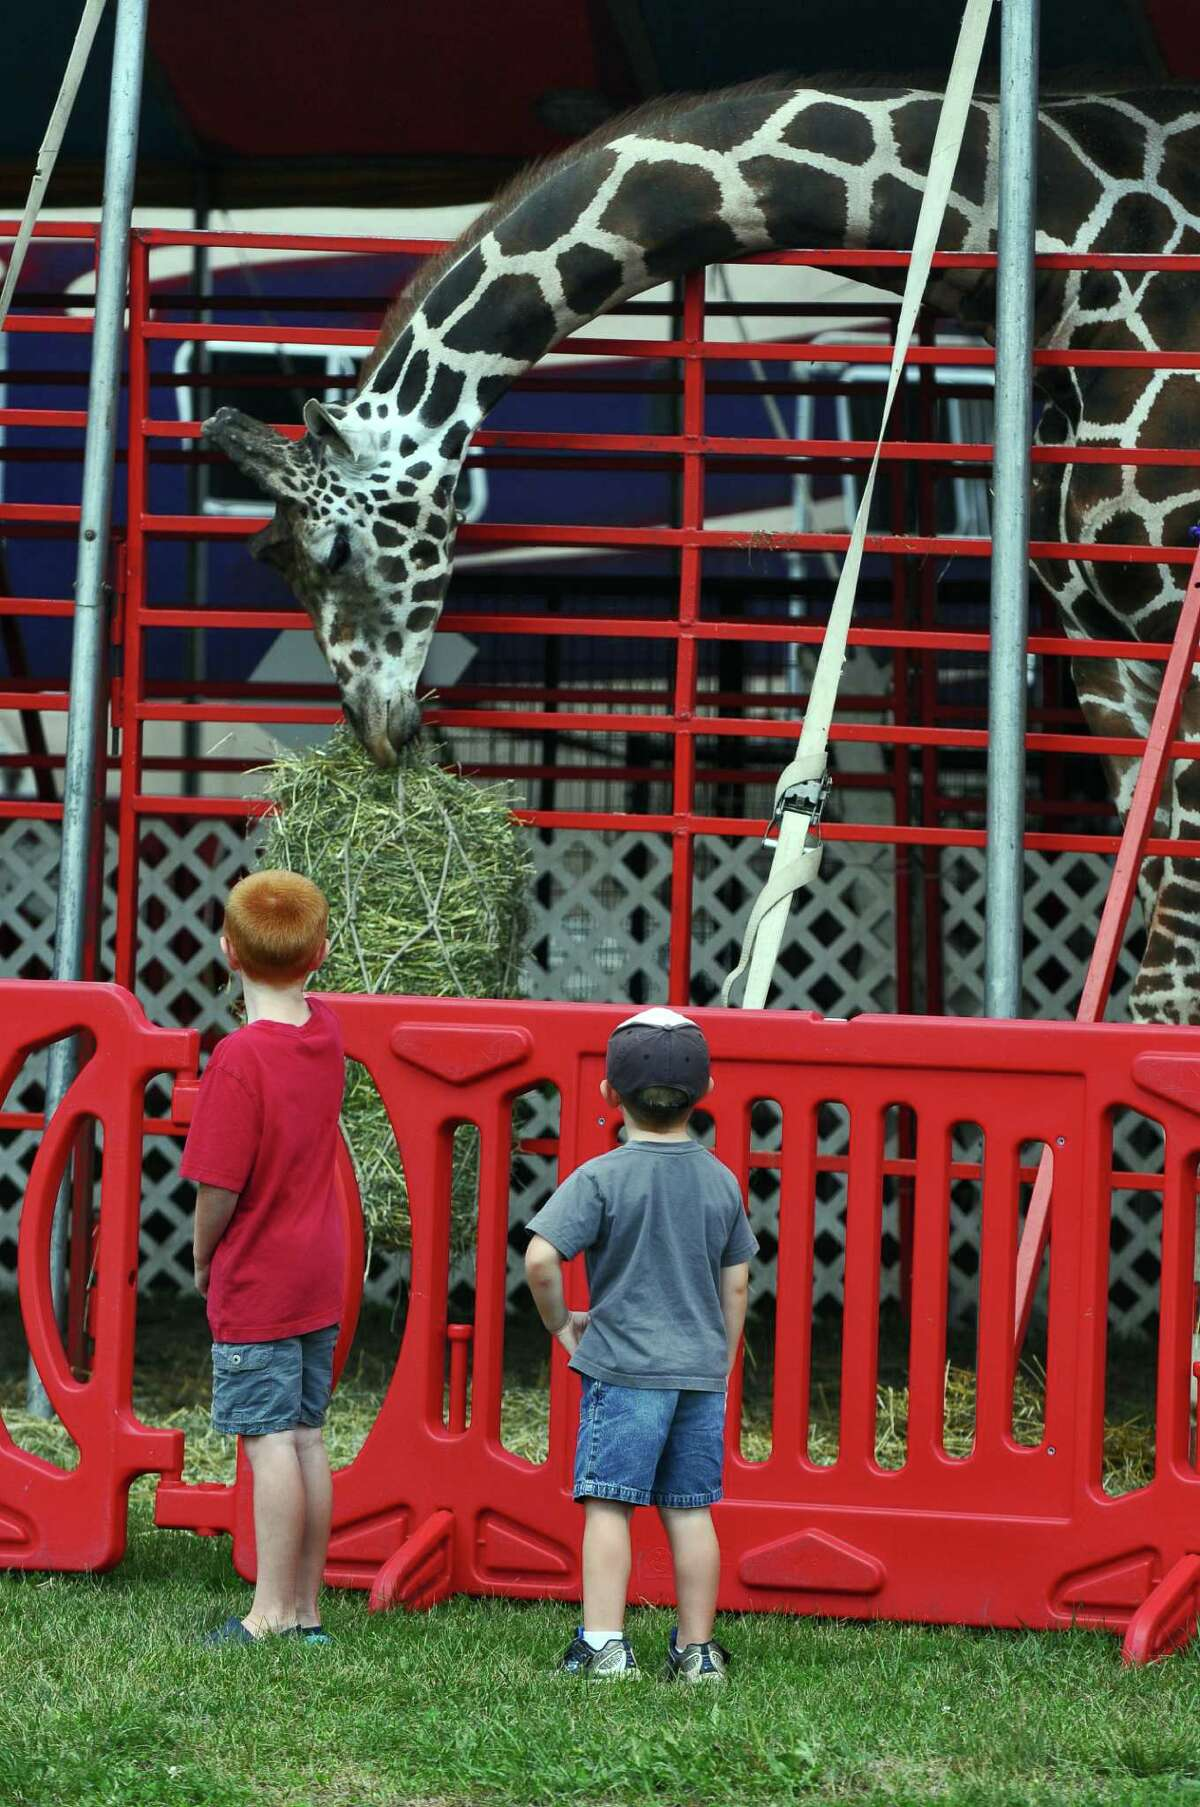 Brady Engel, 7, left, and his cousin Eddie Reville, 6, right, of Selkirk, watch Twigg's, an 18 foot tall giraffe, part of Circus Hollywood, by Corona's of Hollywood, of Florida, have lunch in preparation for the Tuesday beginning of The Altamont Fair, on Sunday Aug. 12, 2012 in Altamont, NY. (Philip Kamrass / Times Union)